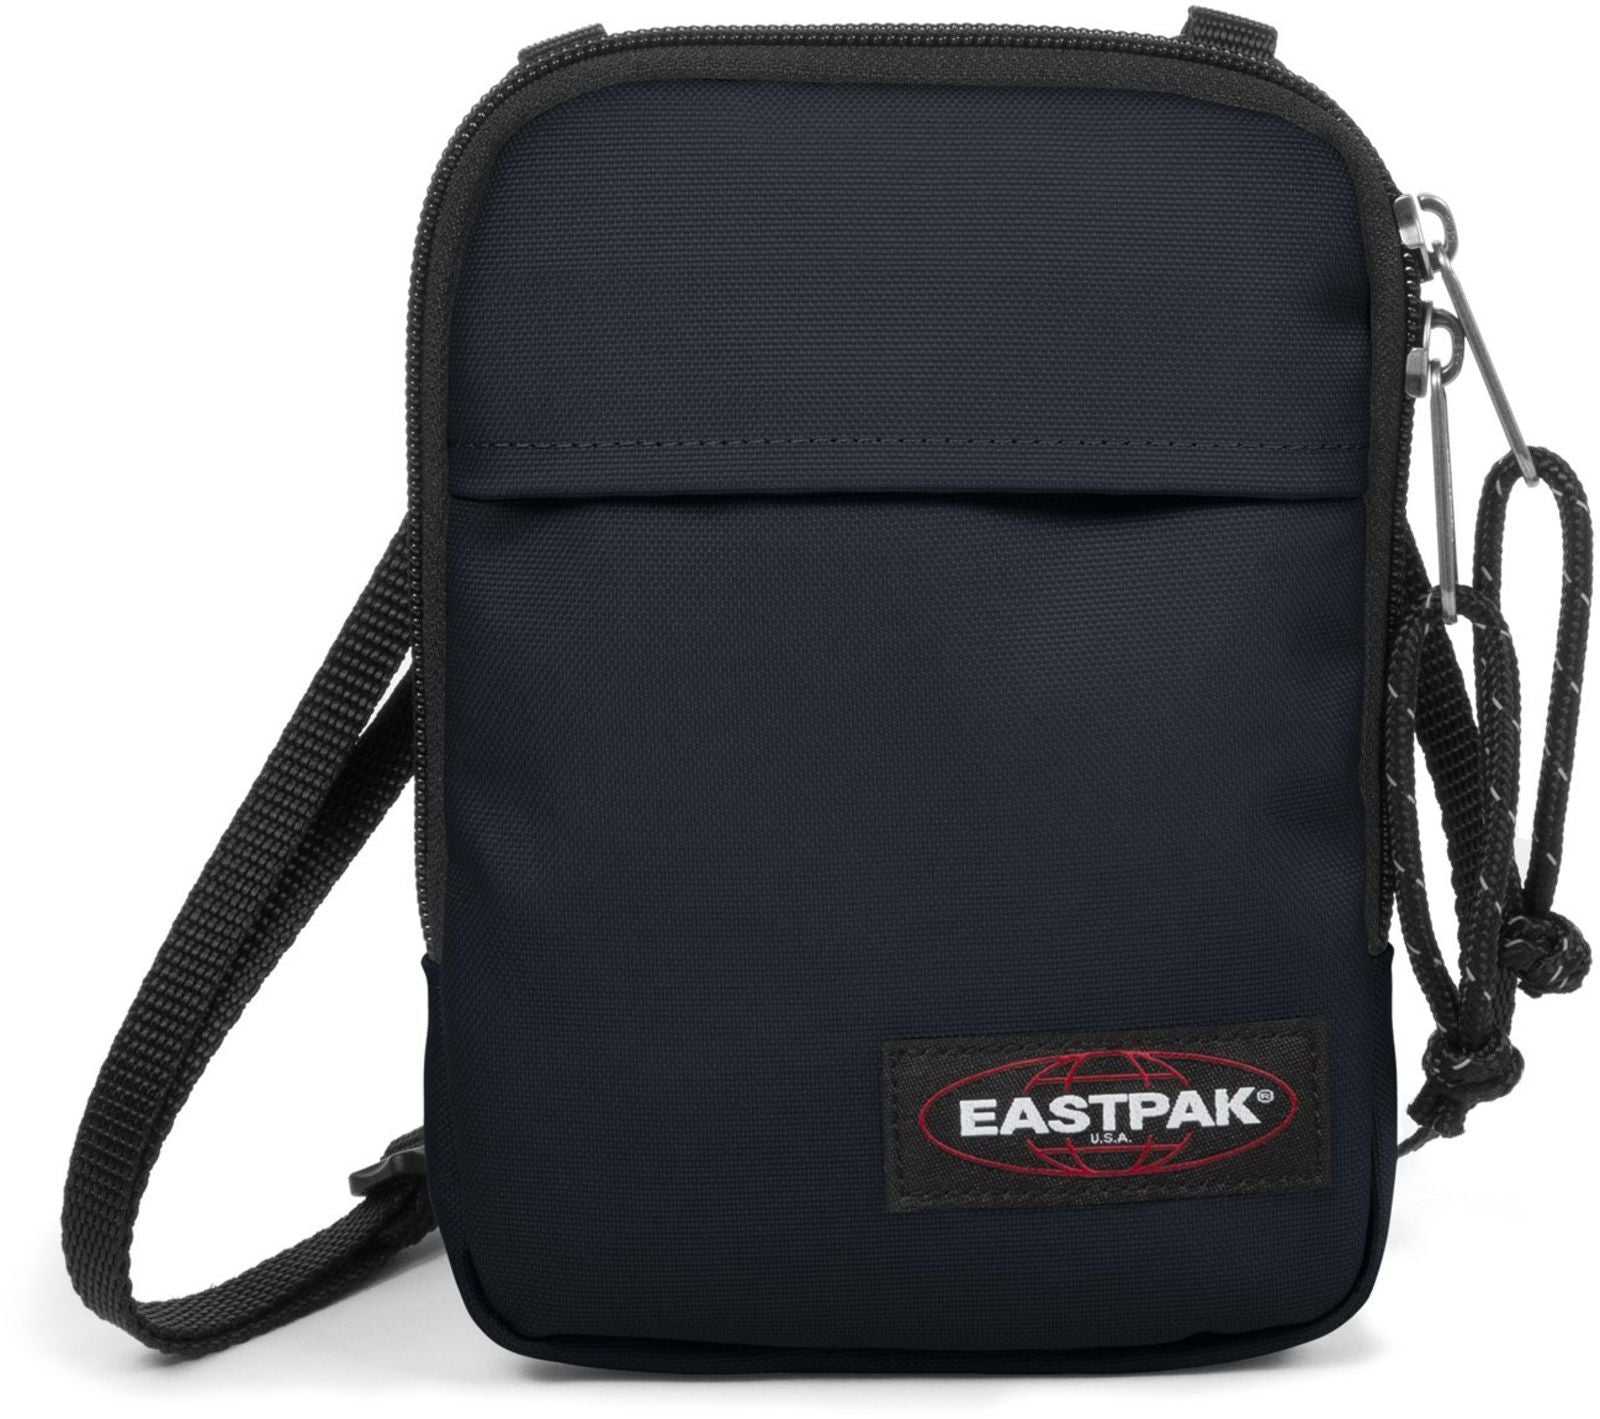 Eastpak Buddy Cross Body Messenger Bag